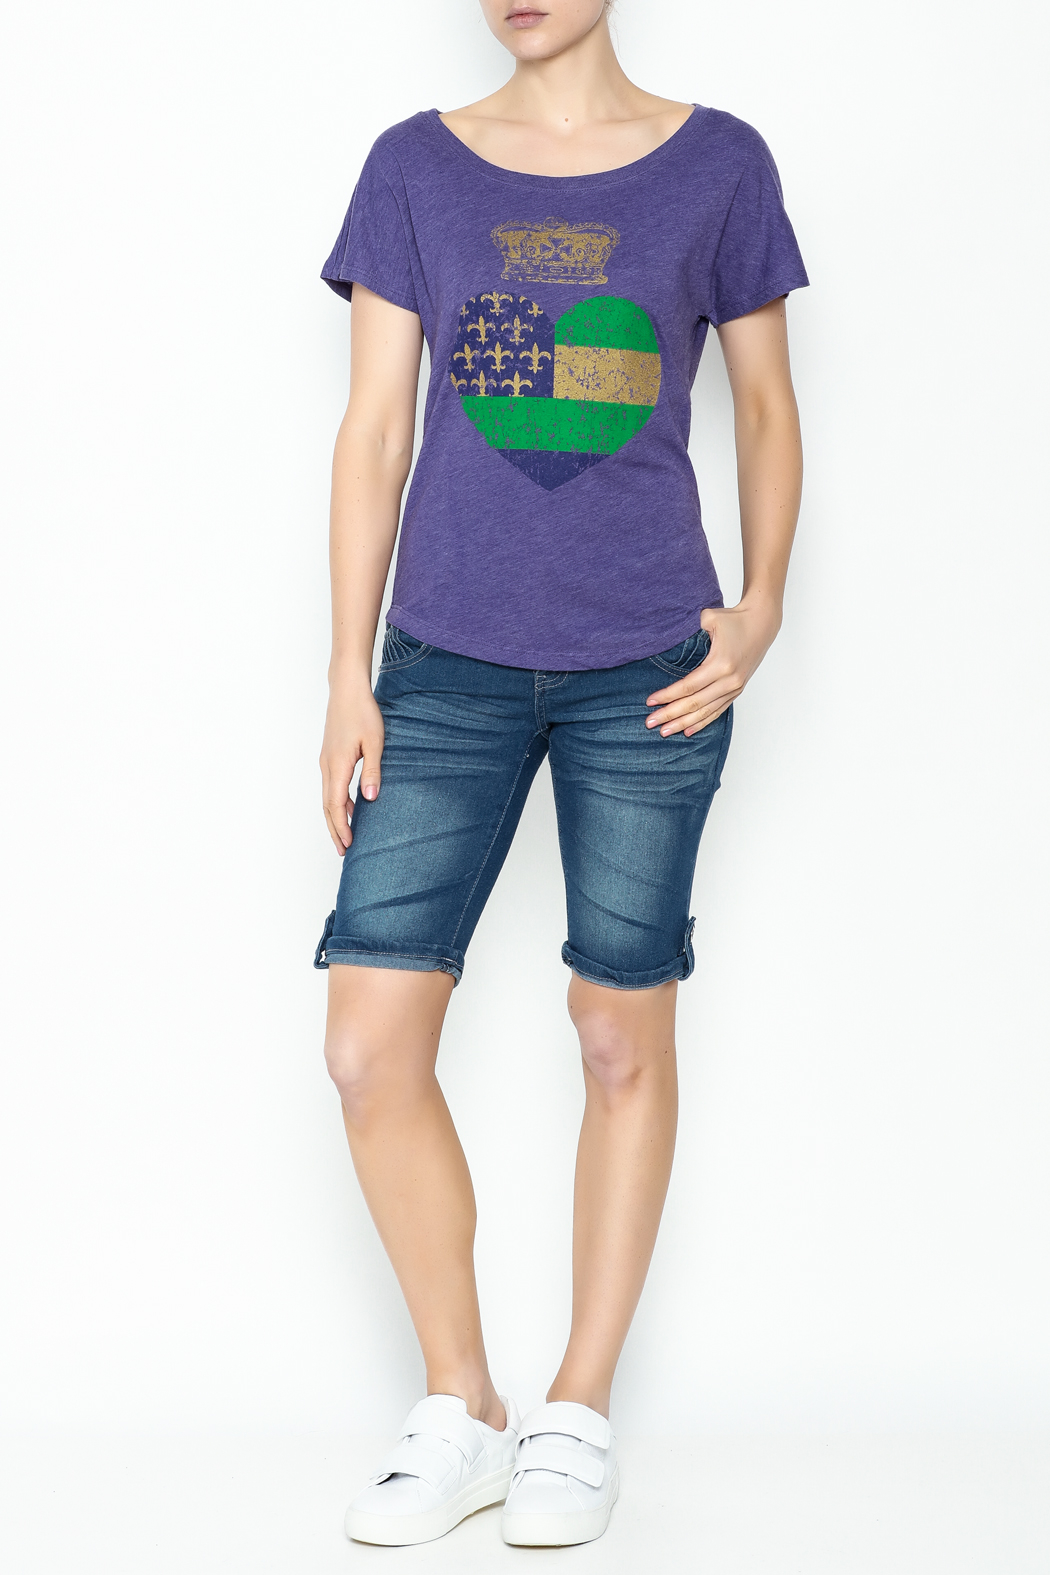 Sarah Ott Heart Crown Dolman Tee - Side Cropped Image